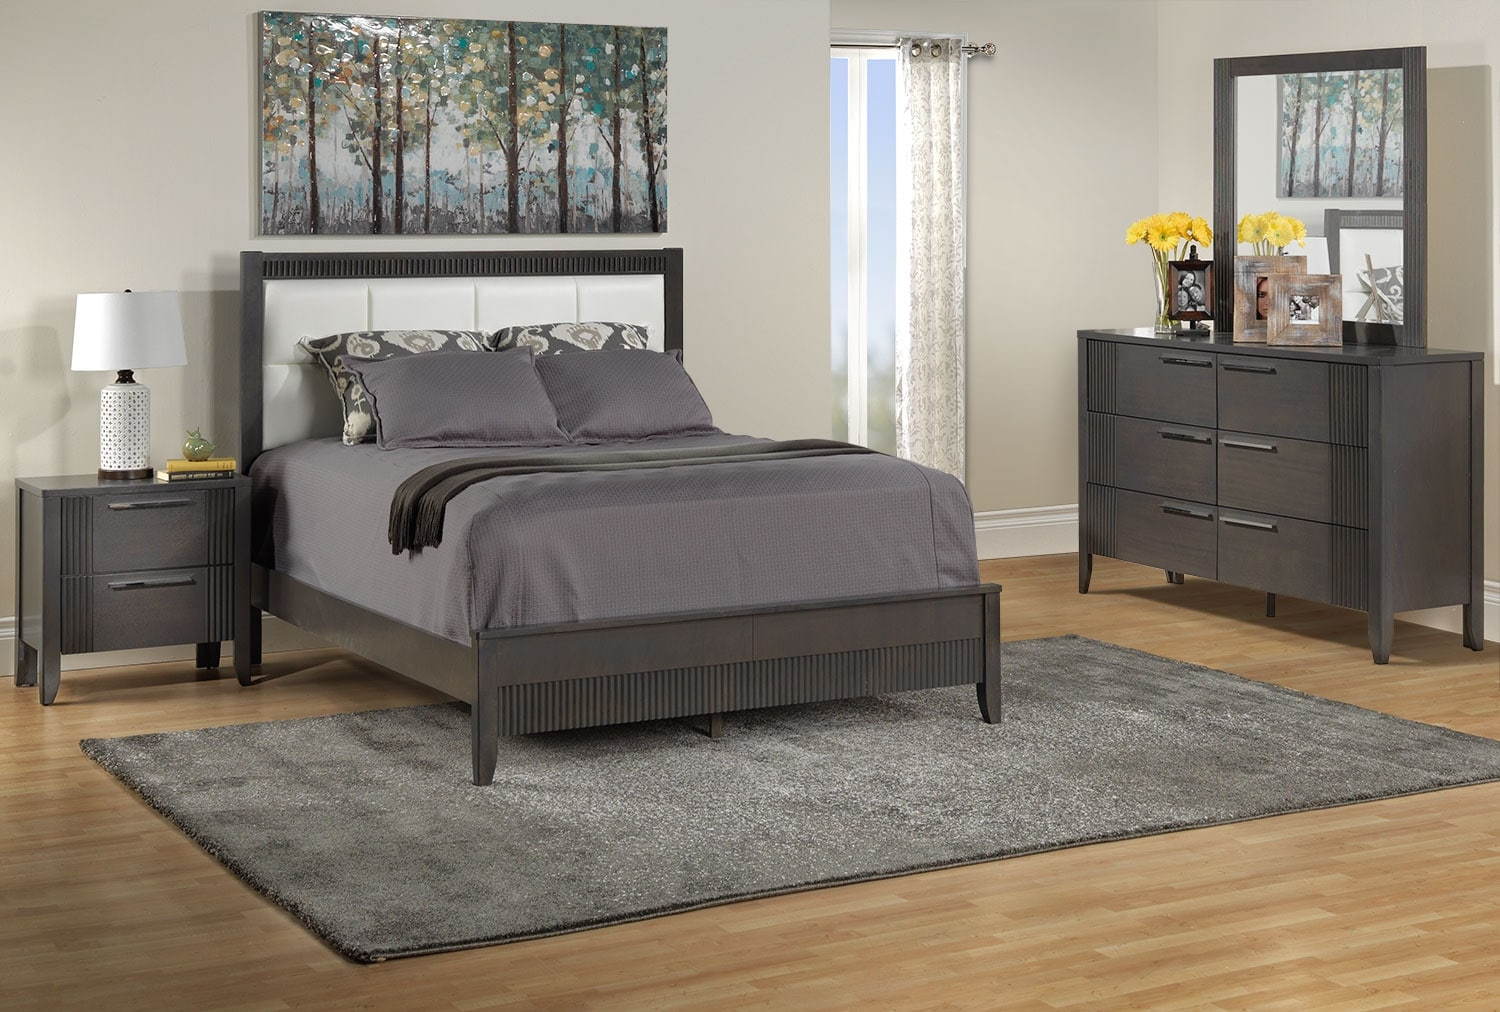 Bedroom Furniture - Amy 5 Pc. Queen Bedroom Package - Grey